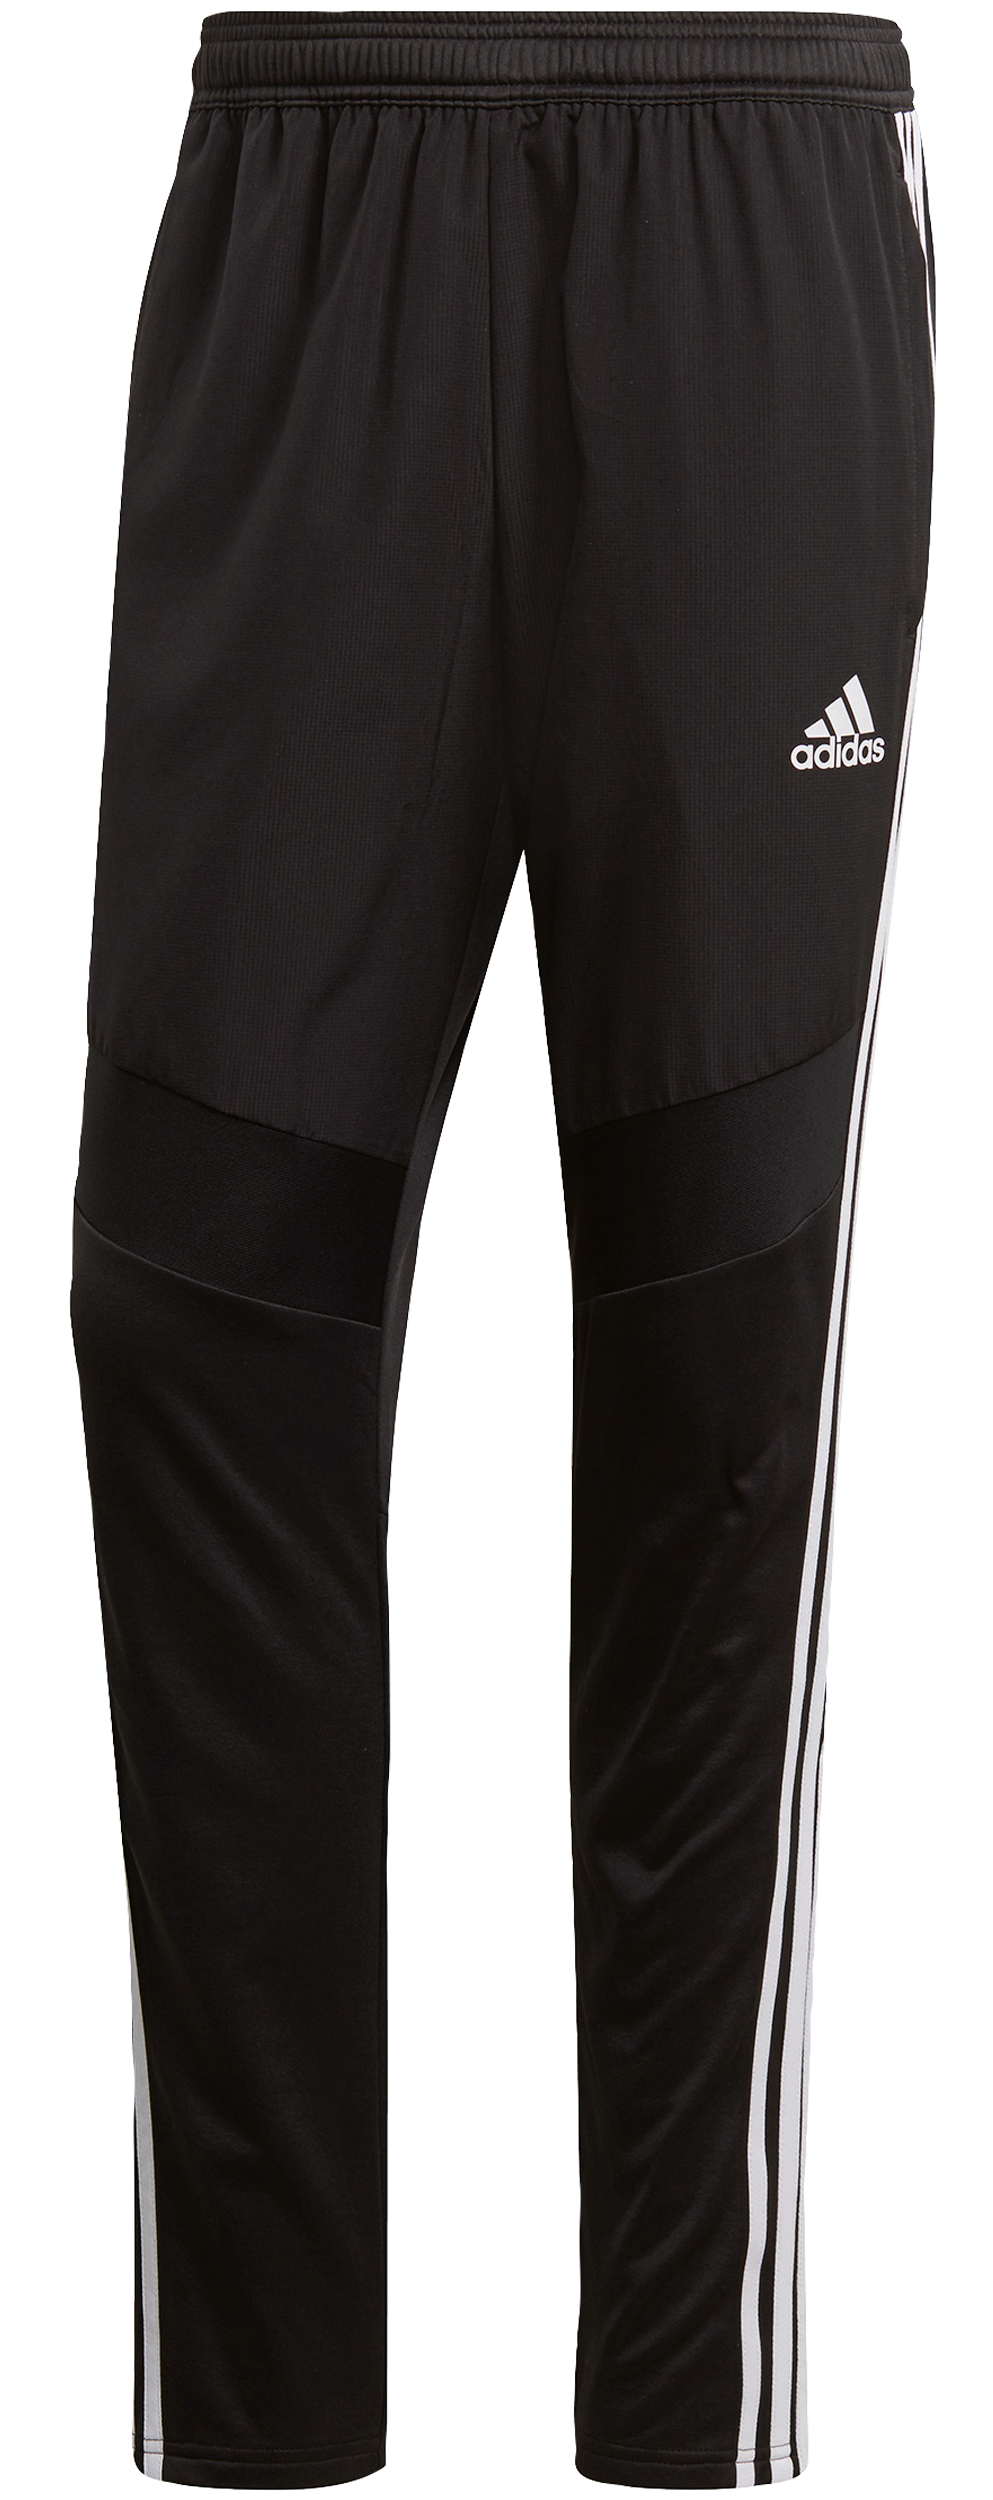 adidas Tiro 19 Warm Pants